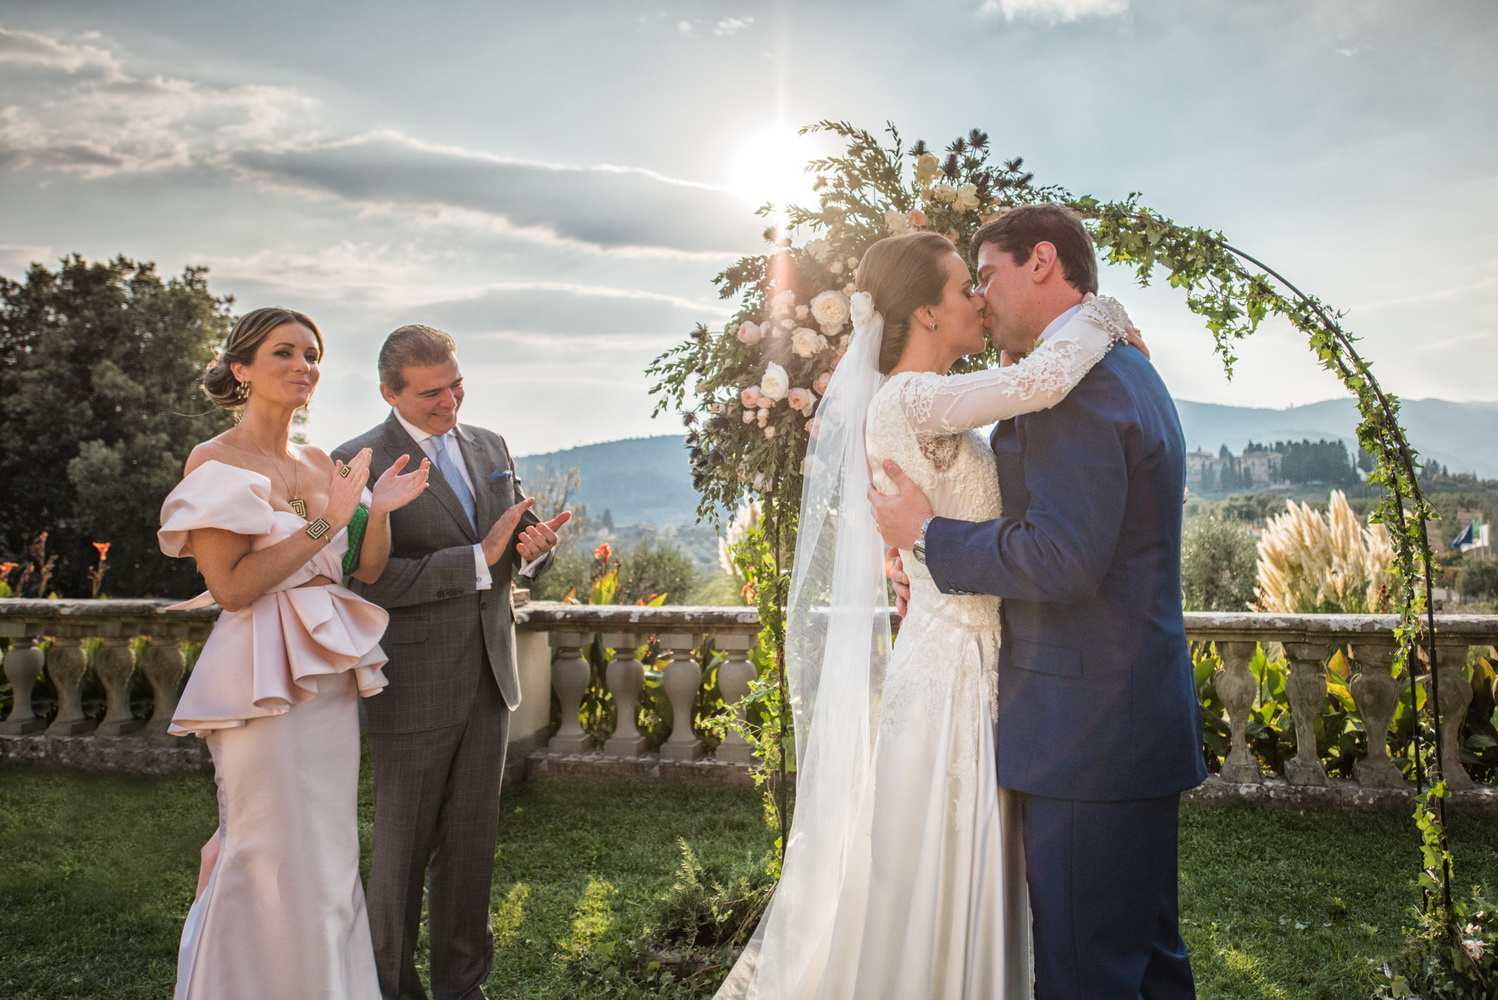 Destination Wedding Toscana | Caroline e Fernando destination wedding na toscana | caroline e fernando Destination Wedding na Toscana | Caroline e Fernando marco zammarchi destination wedding 32